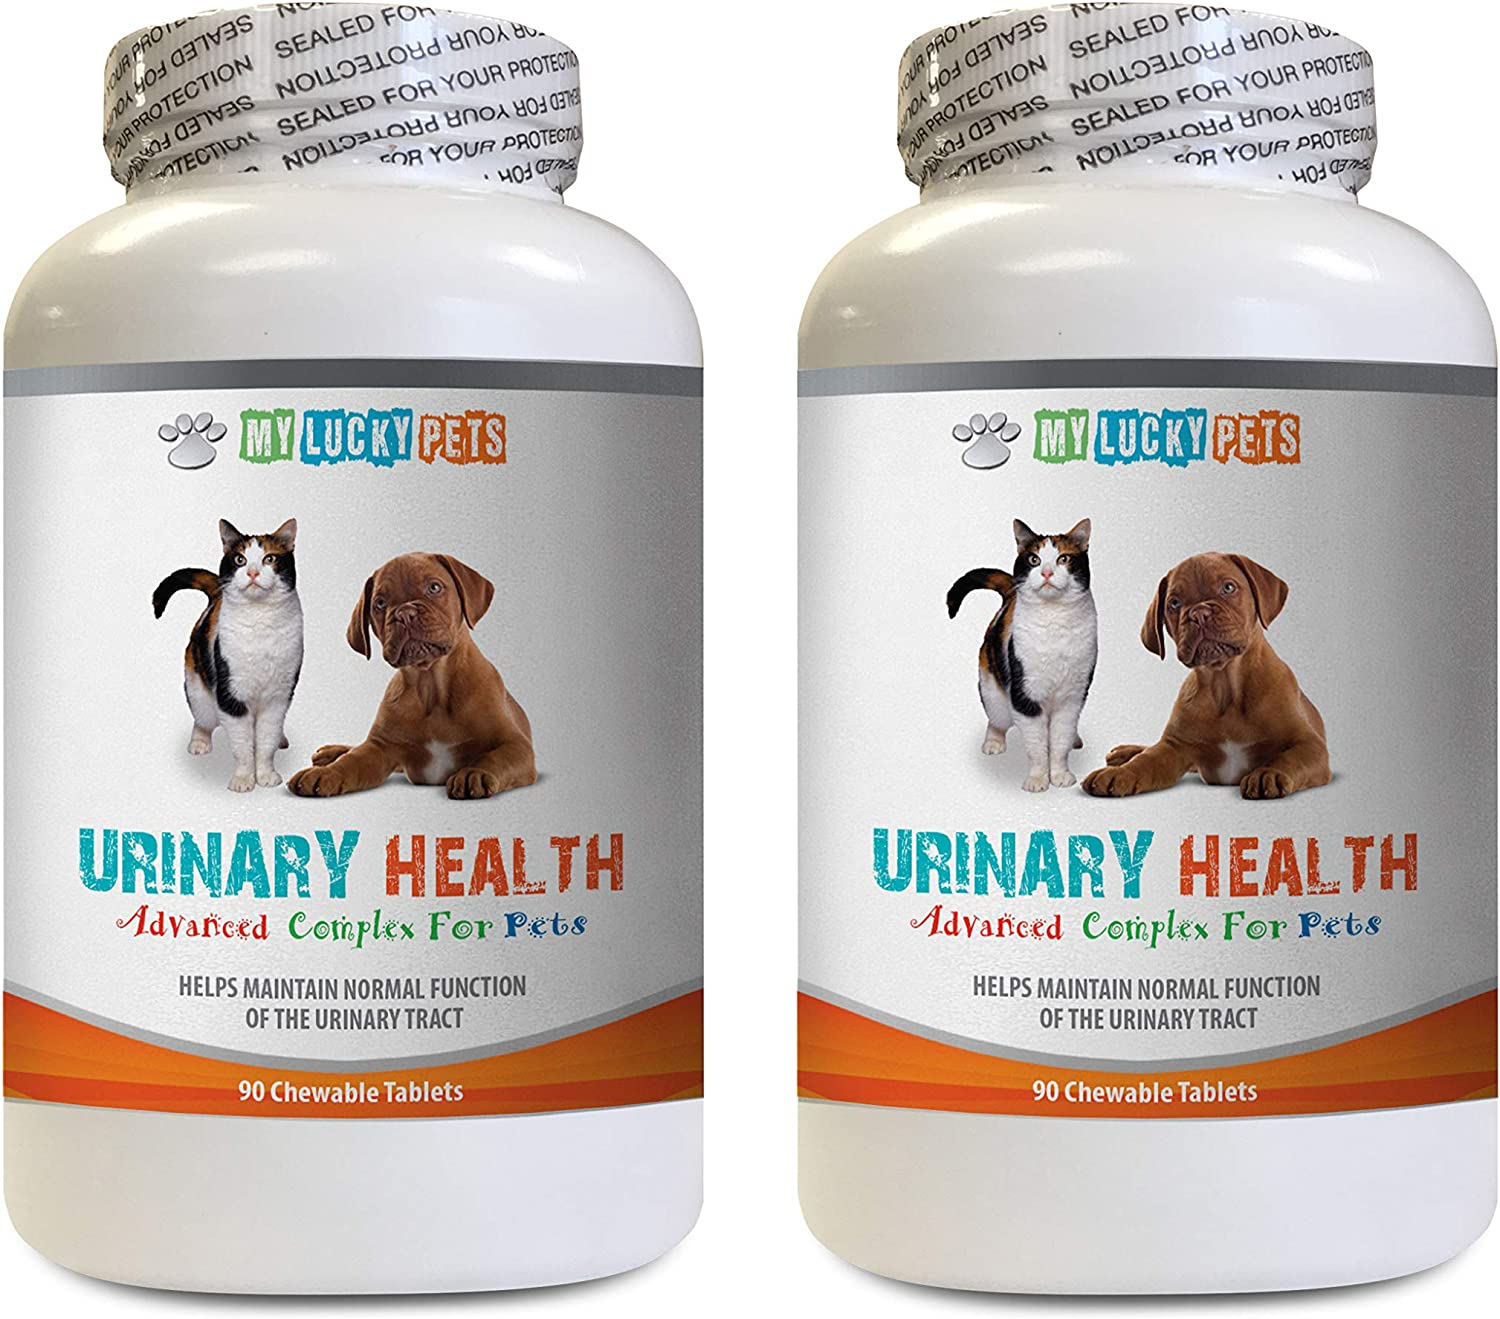 Urinary Tract cat Food - Pets Urinary Health Complex - for Dogs and Cats - Advanced Bladder Support - cat Cranberry Treats - 2 Bottles (180 Treats)